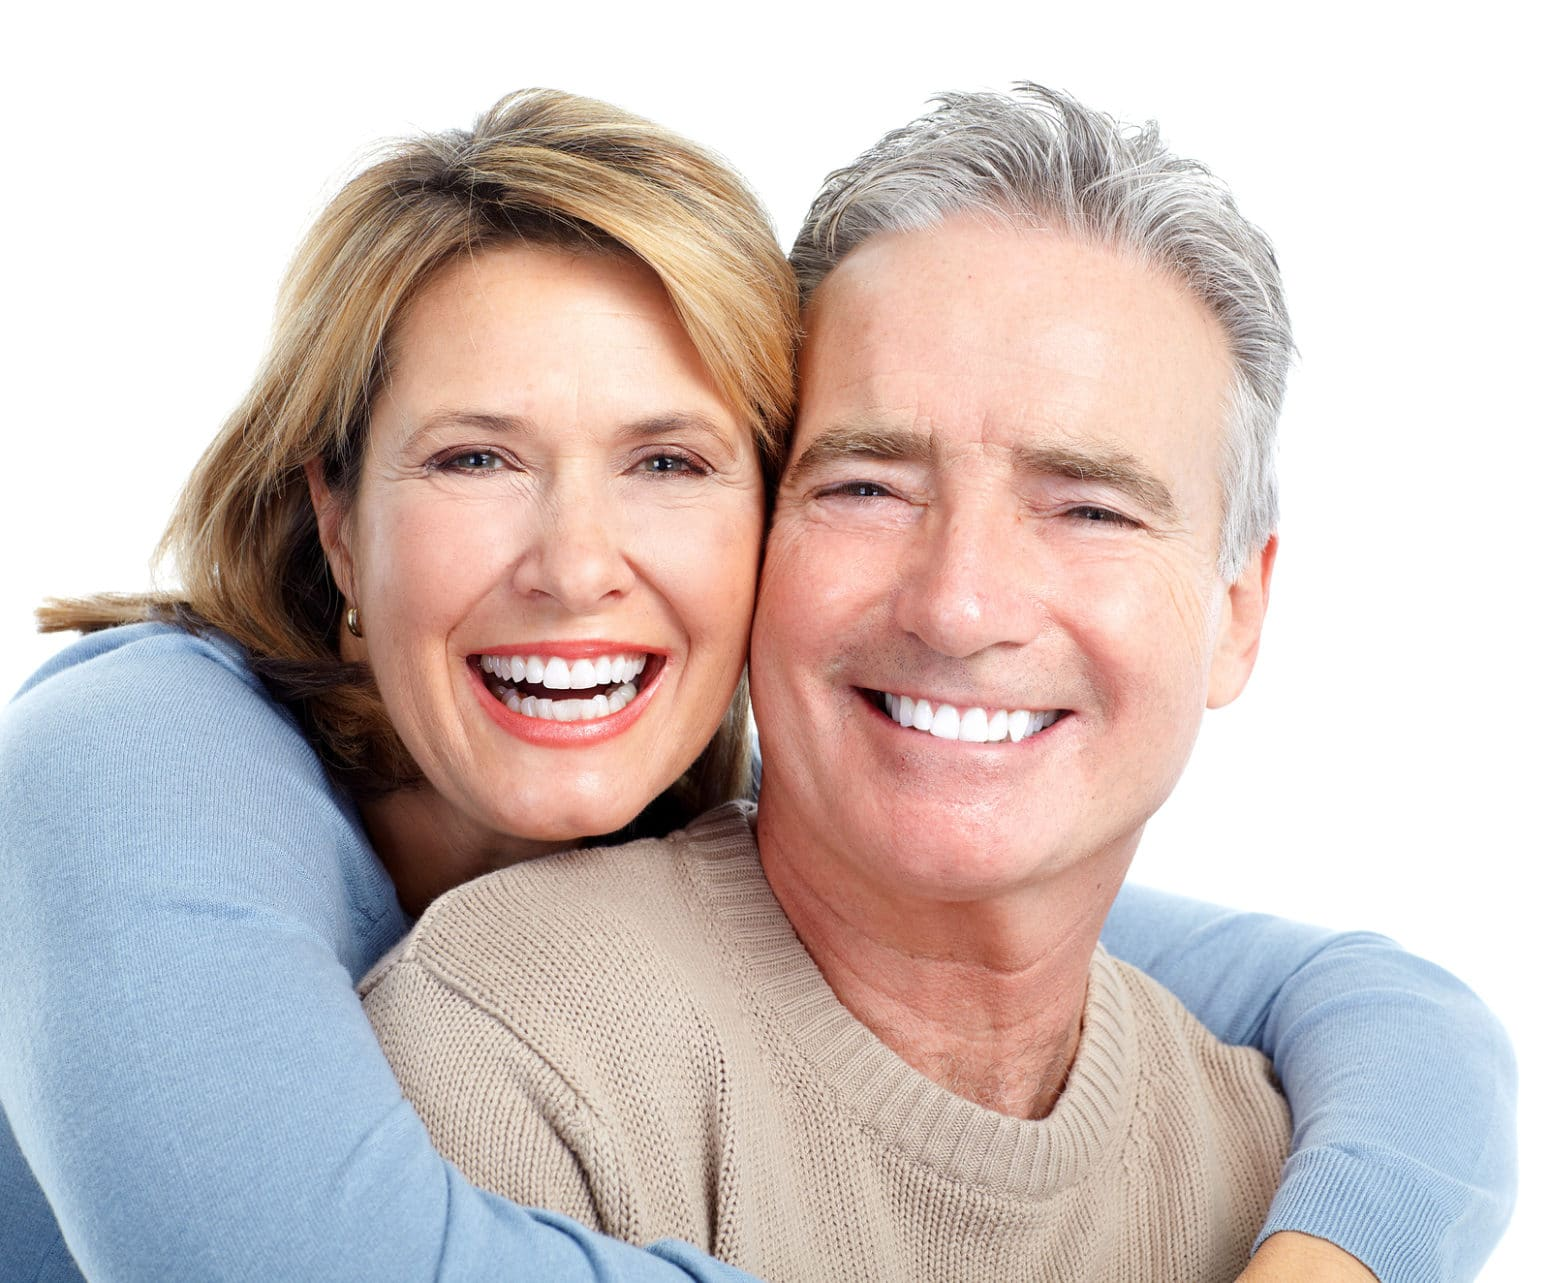 senior smiling couple in